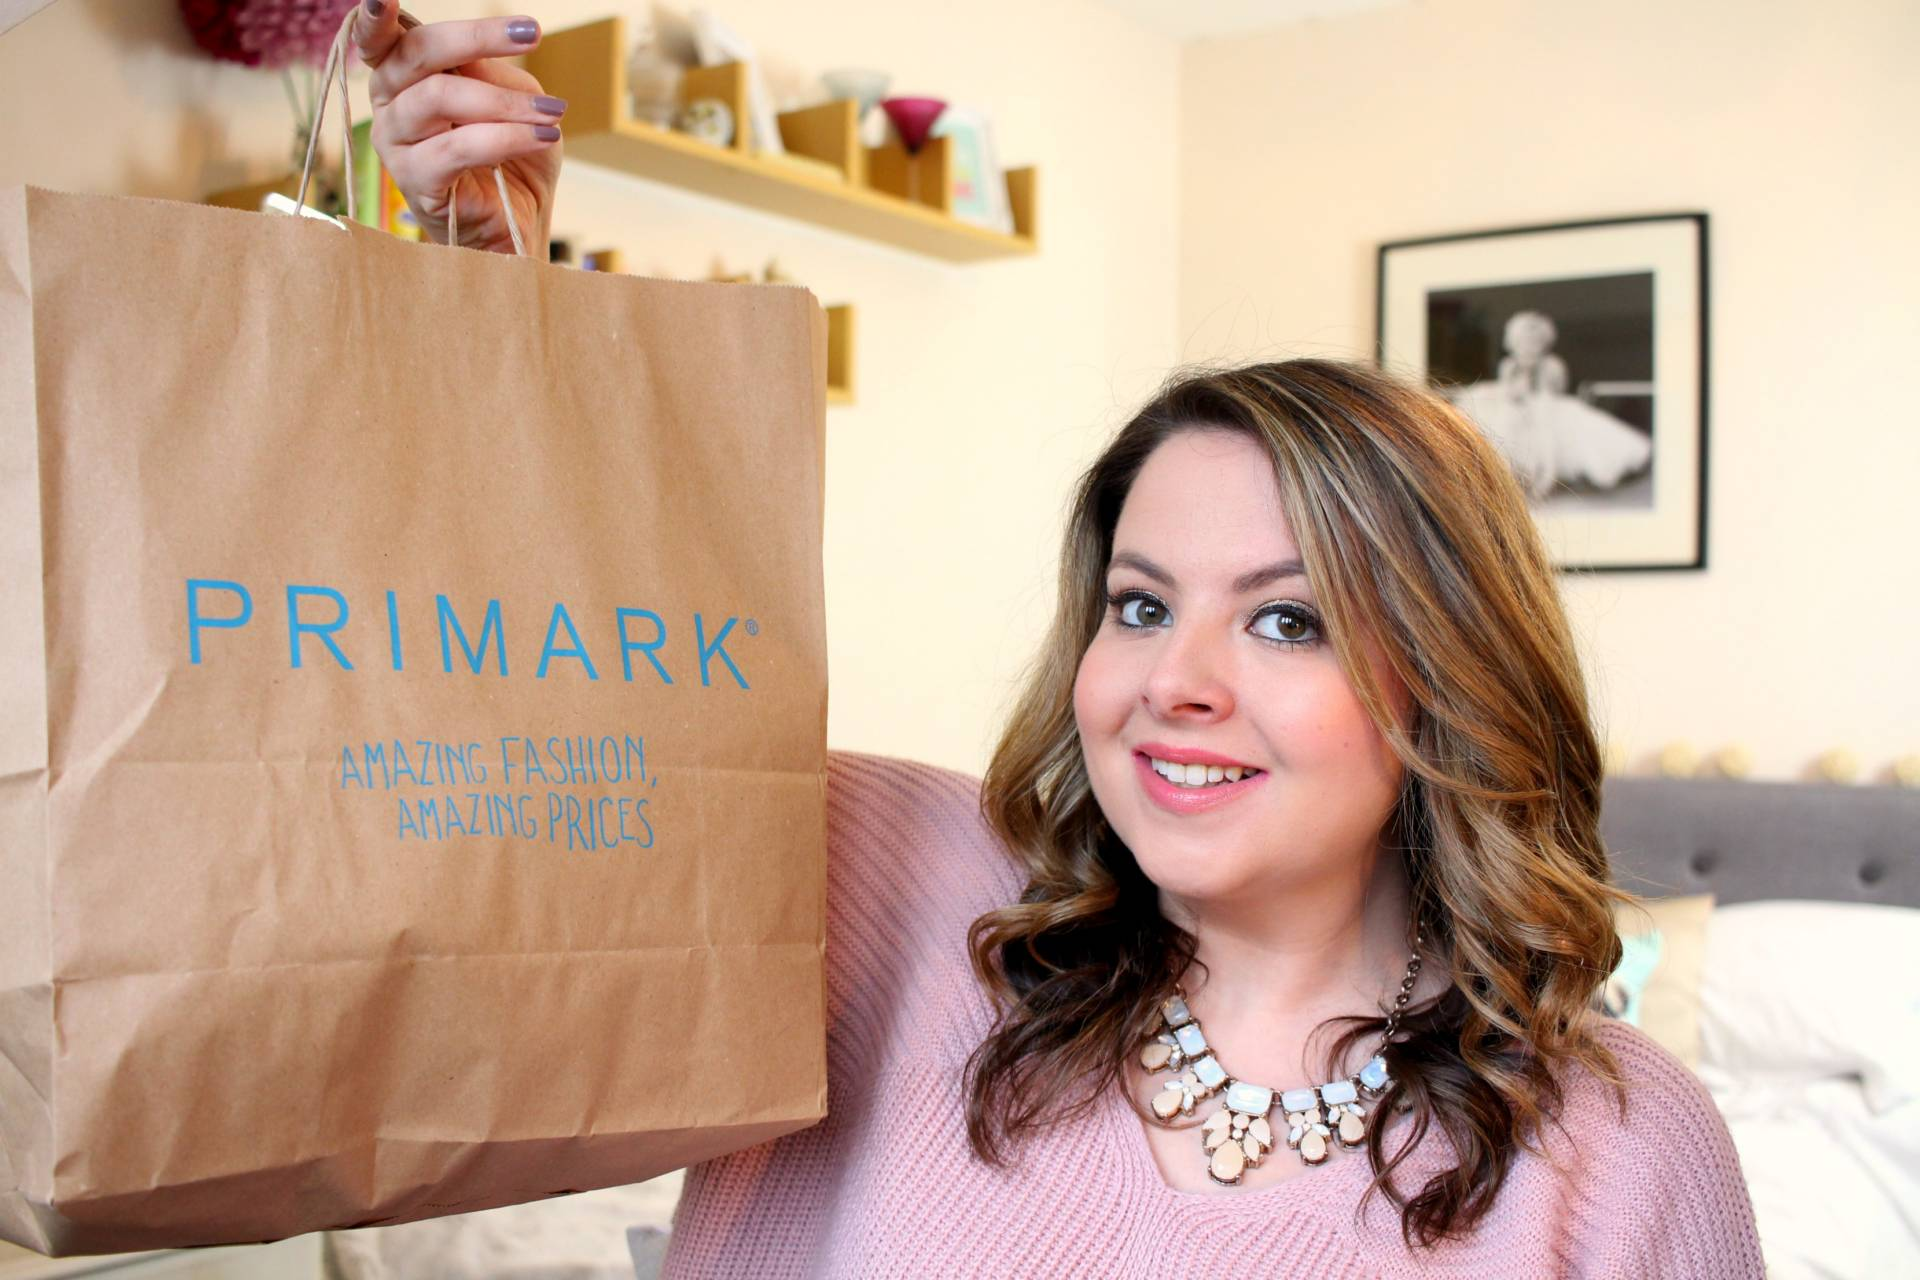 It's time for another Primark Haul